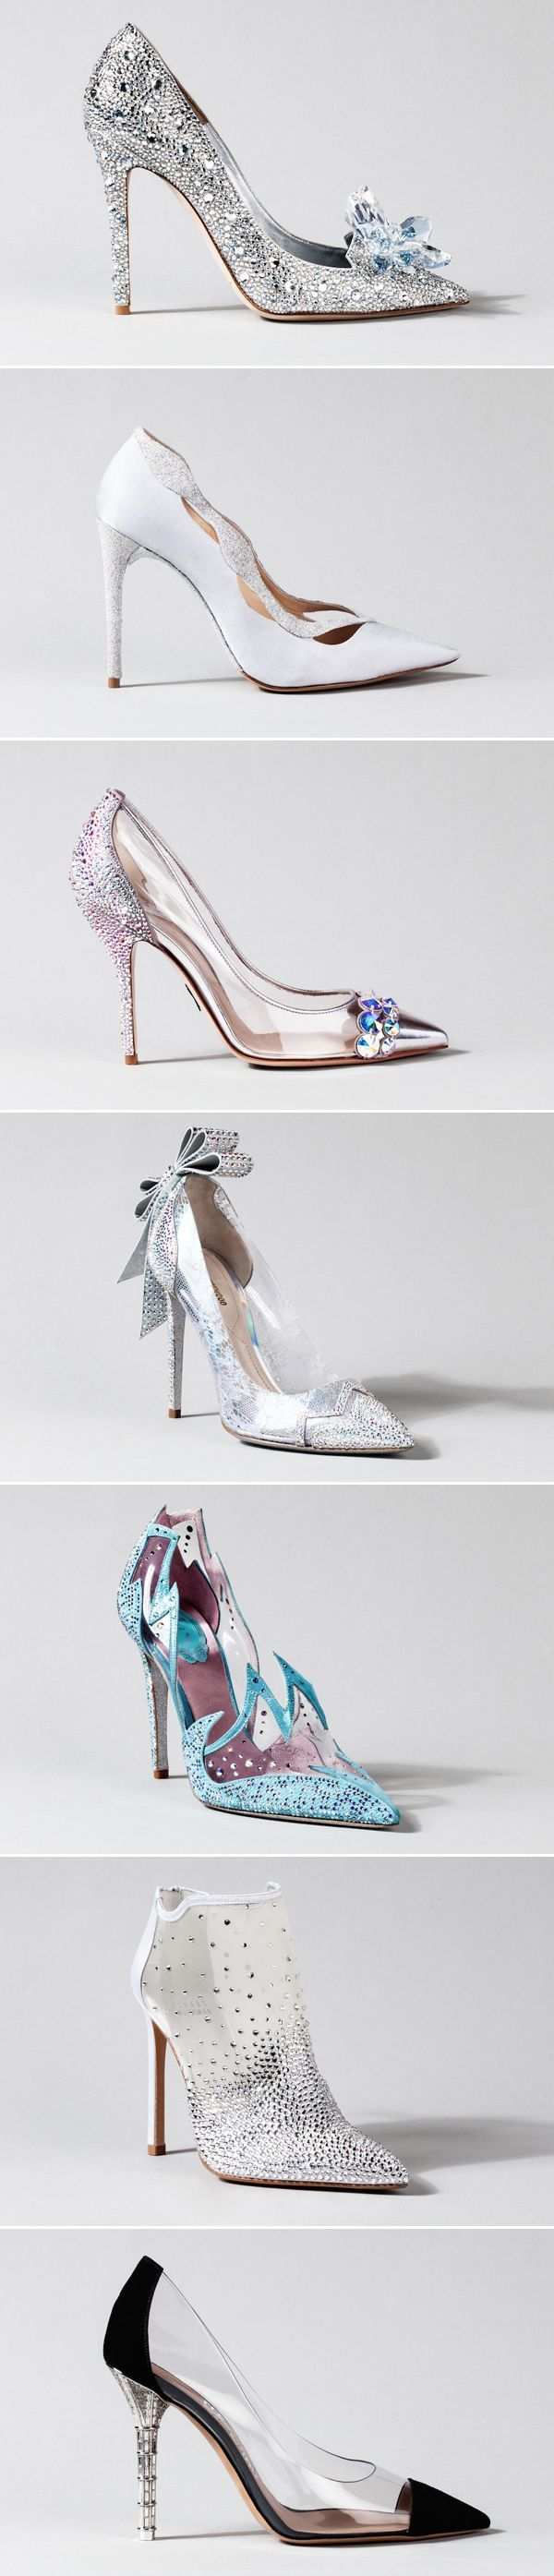 15 Stunning Cinderella-Inspired Wedding Shoes - The Glass Slipper Project: Cinderella-Inspired Designer Shoes